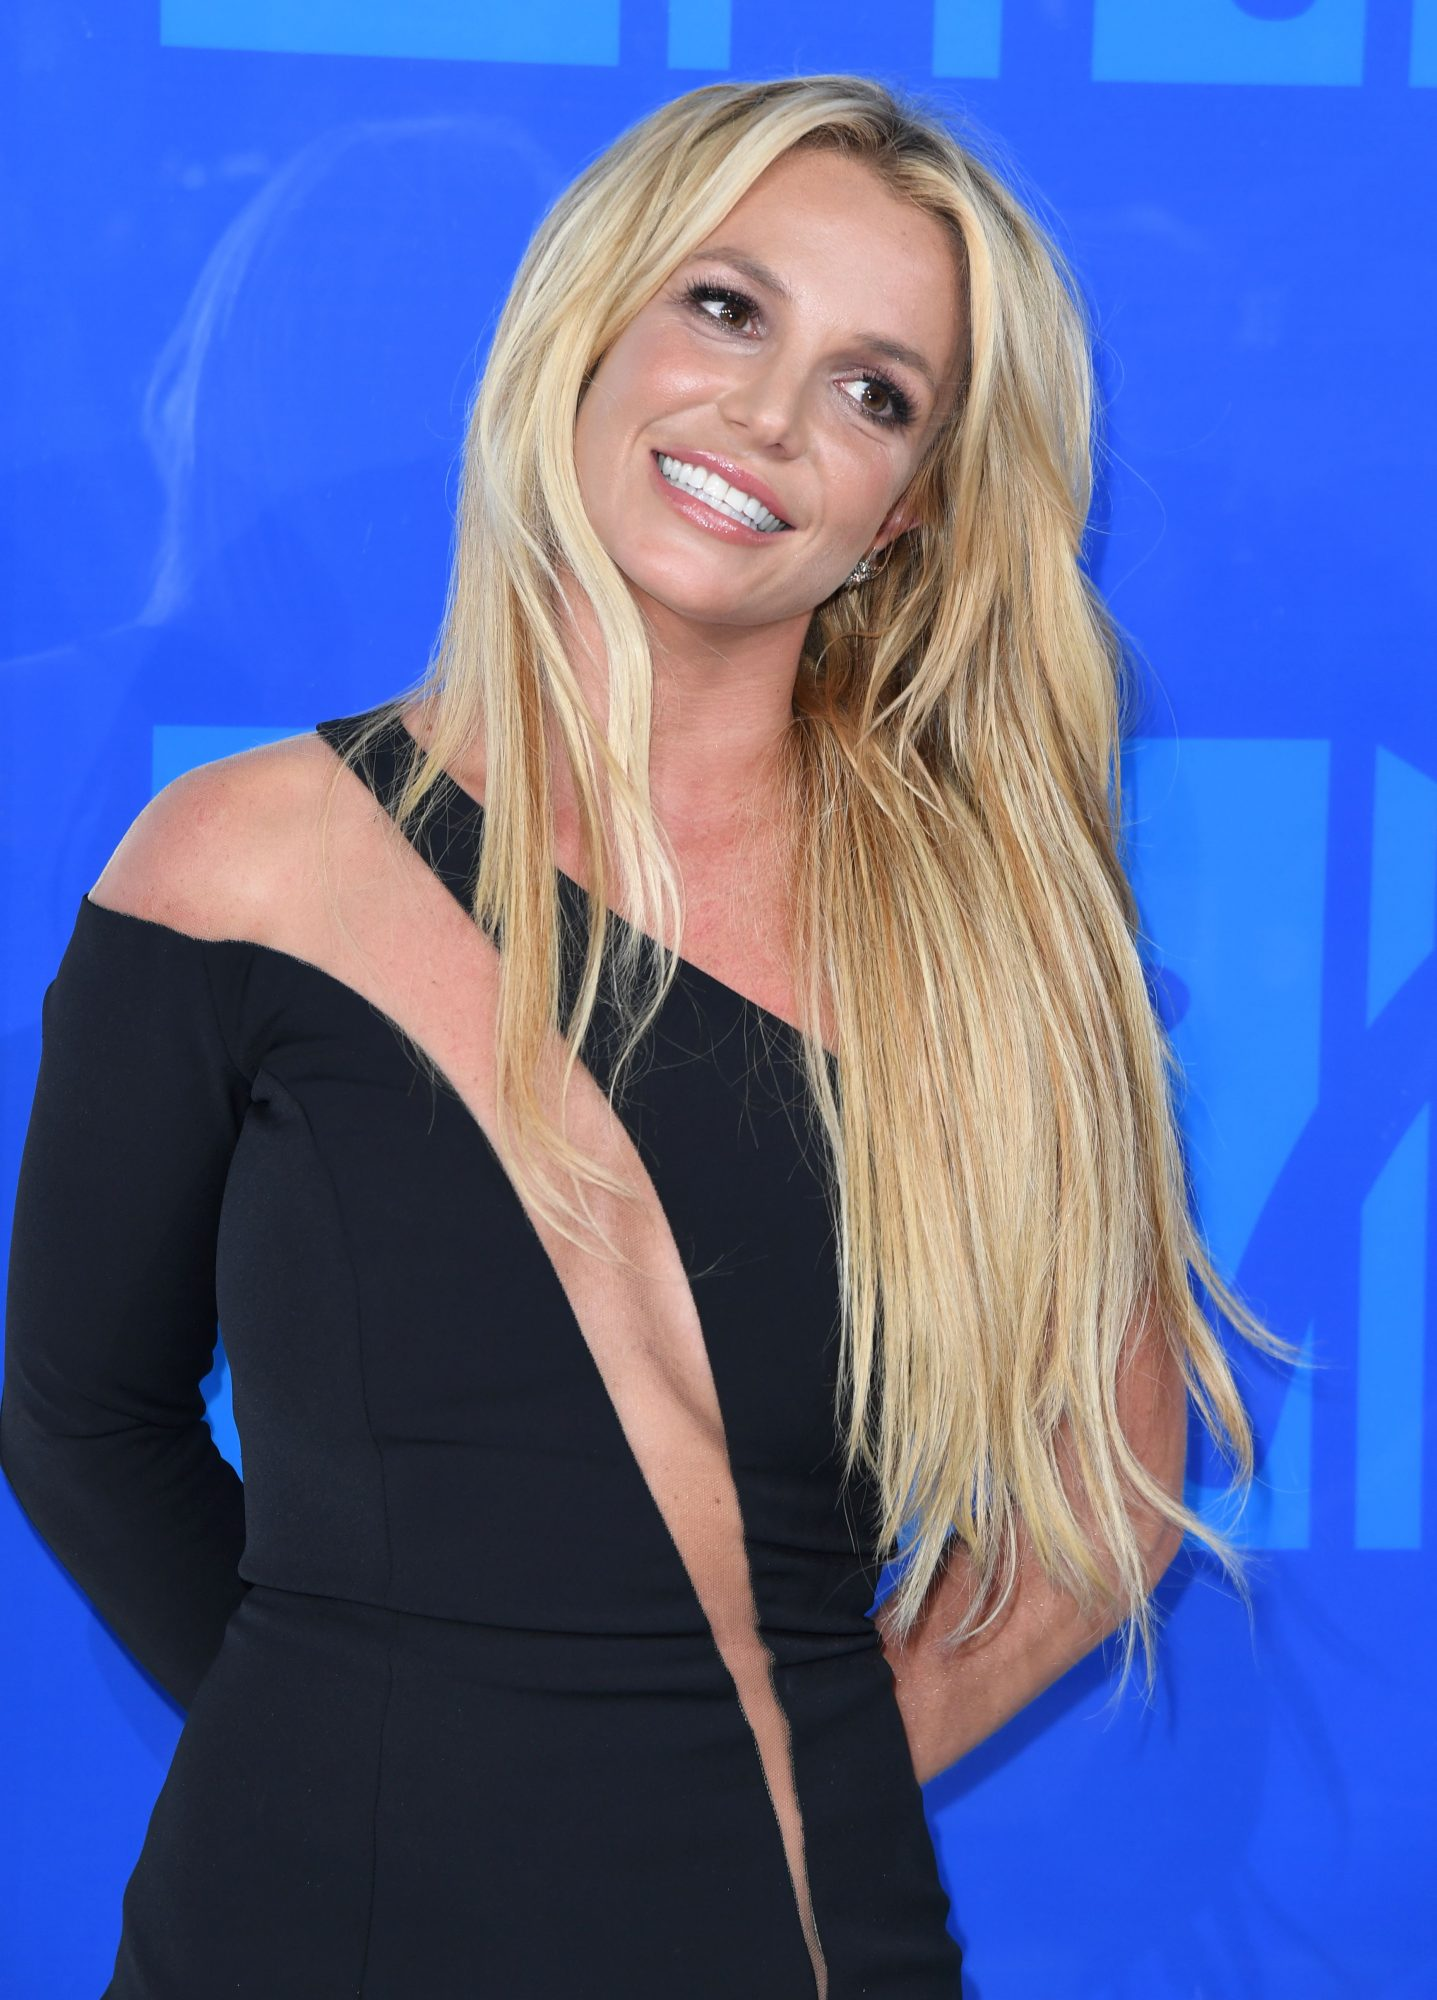 Britney Spears Shares the Foods She Says Helped Her Drop Weight She'd 'Been Wanting to Lose'